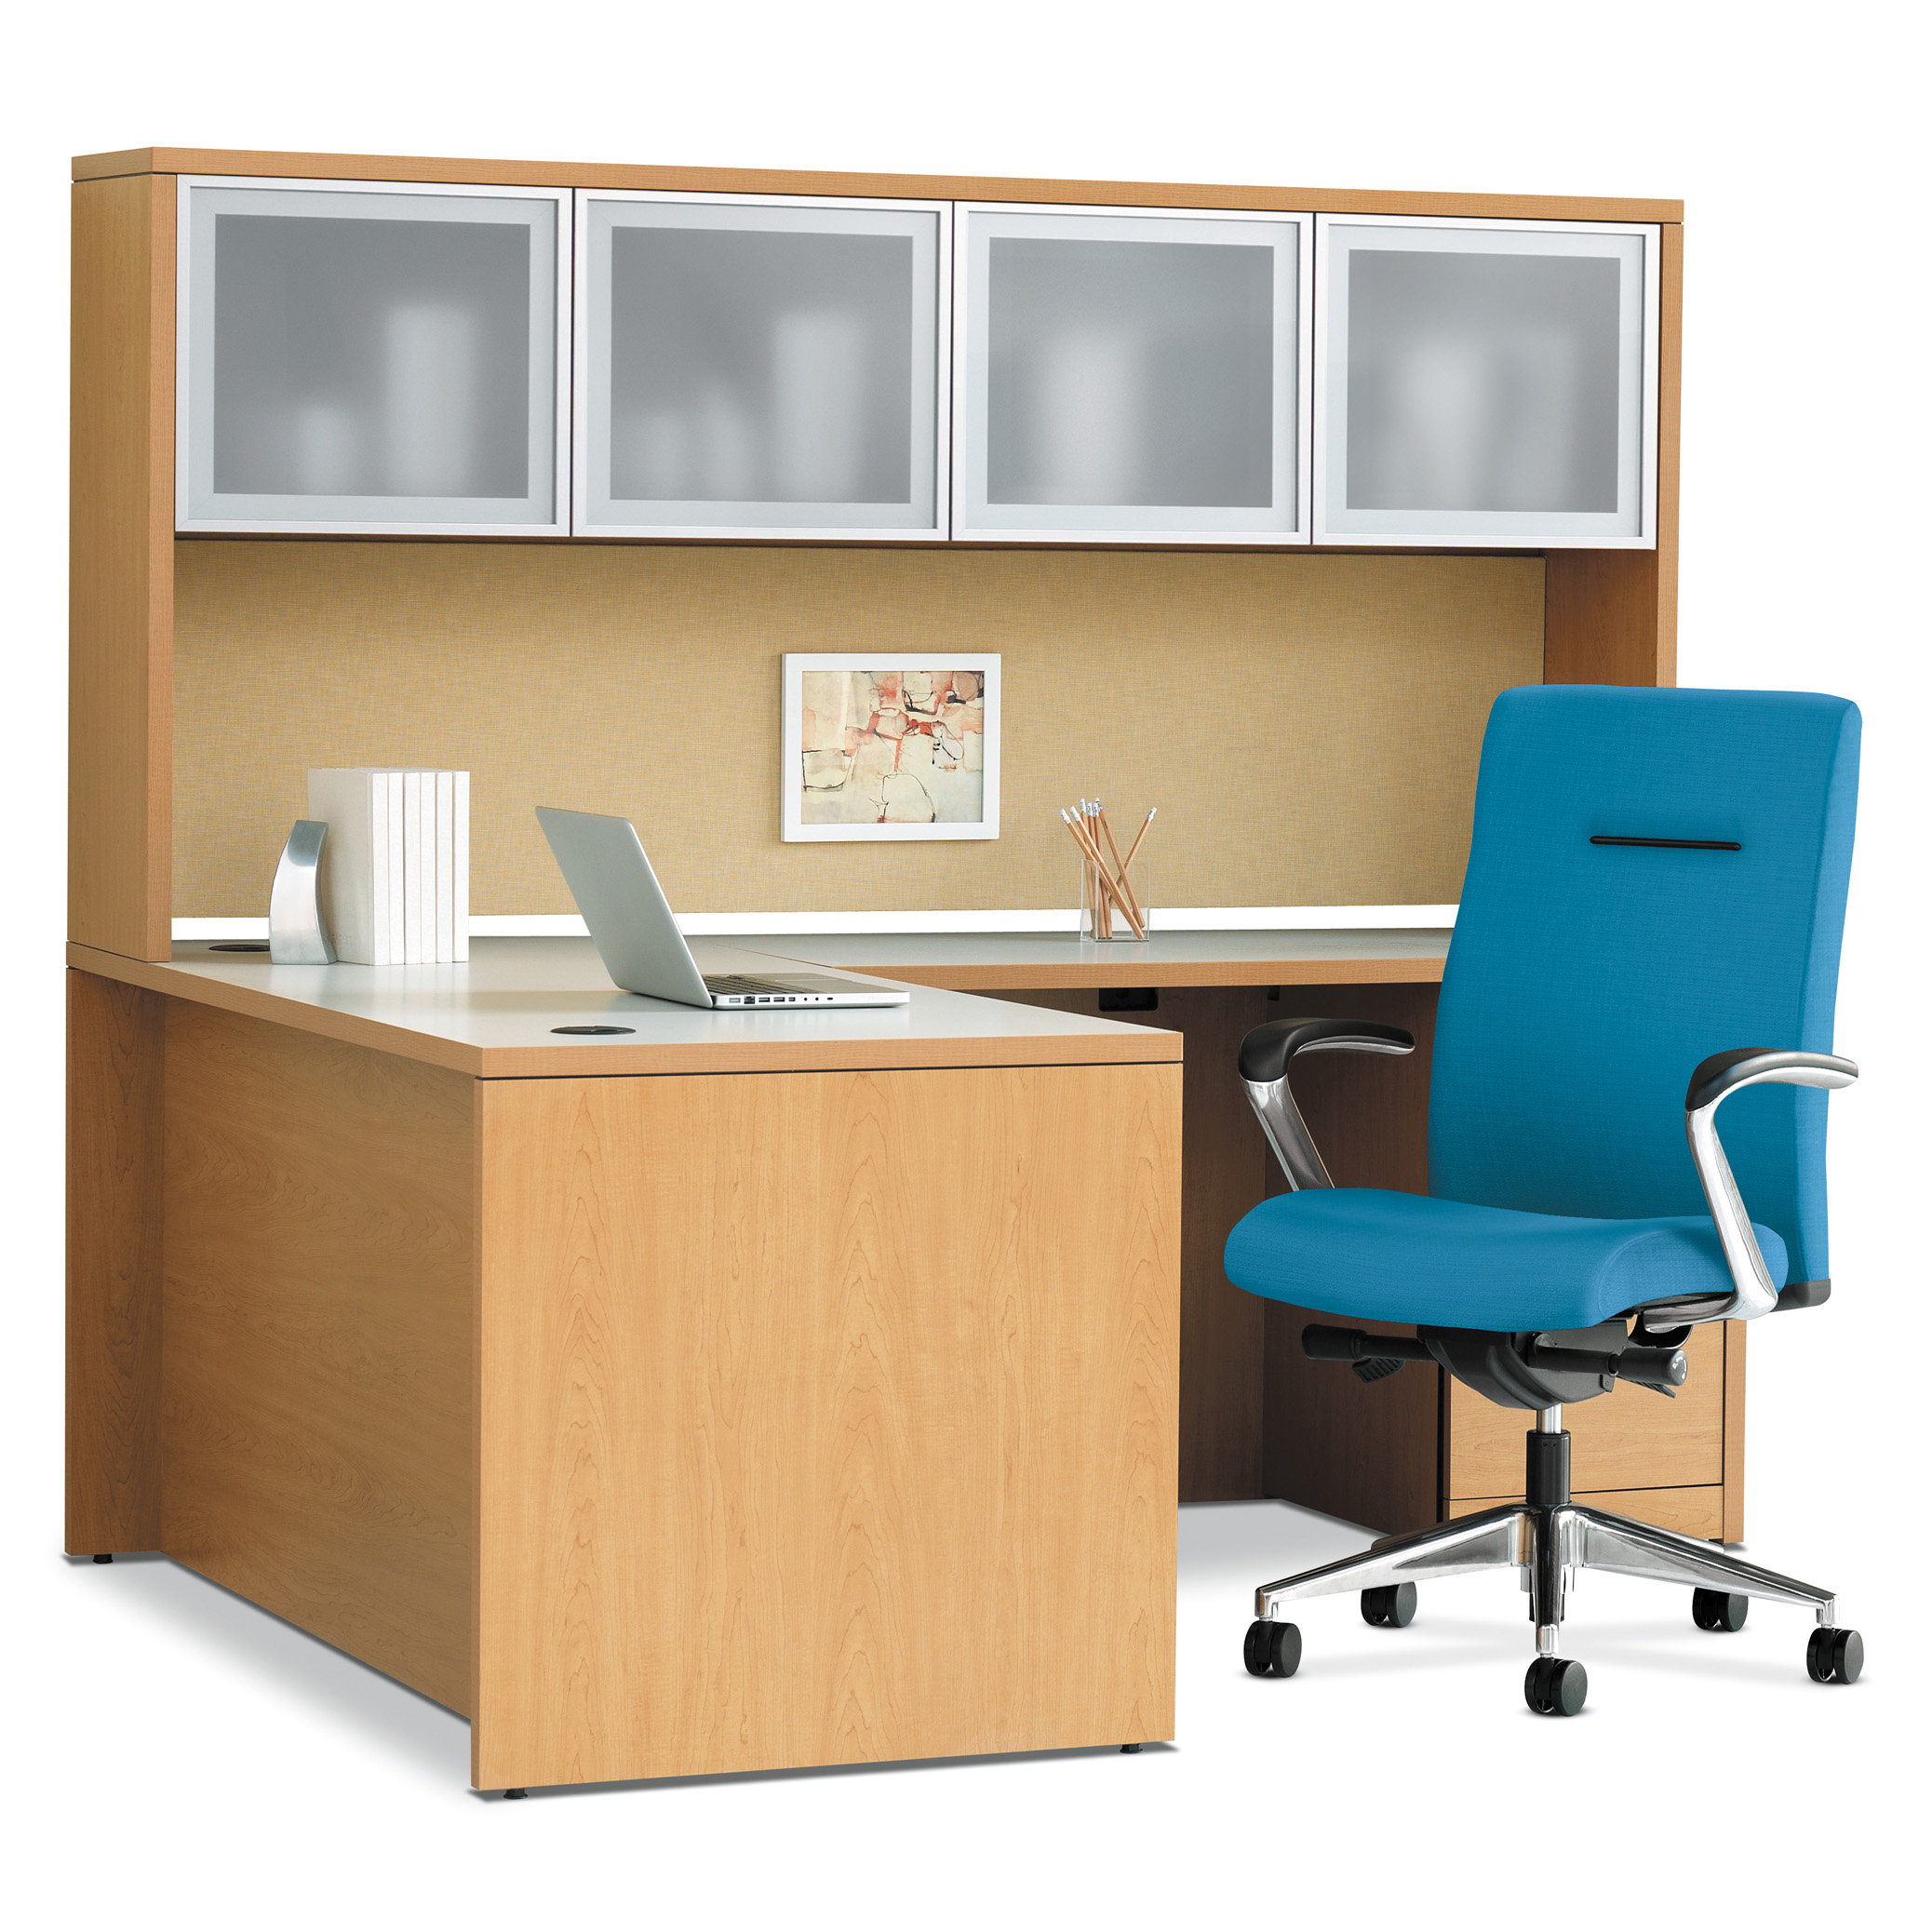 40 office furniture on rent service trolley gueridon wood bedroom interior design in Home furniture rental tampa